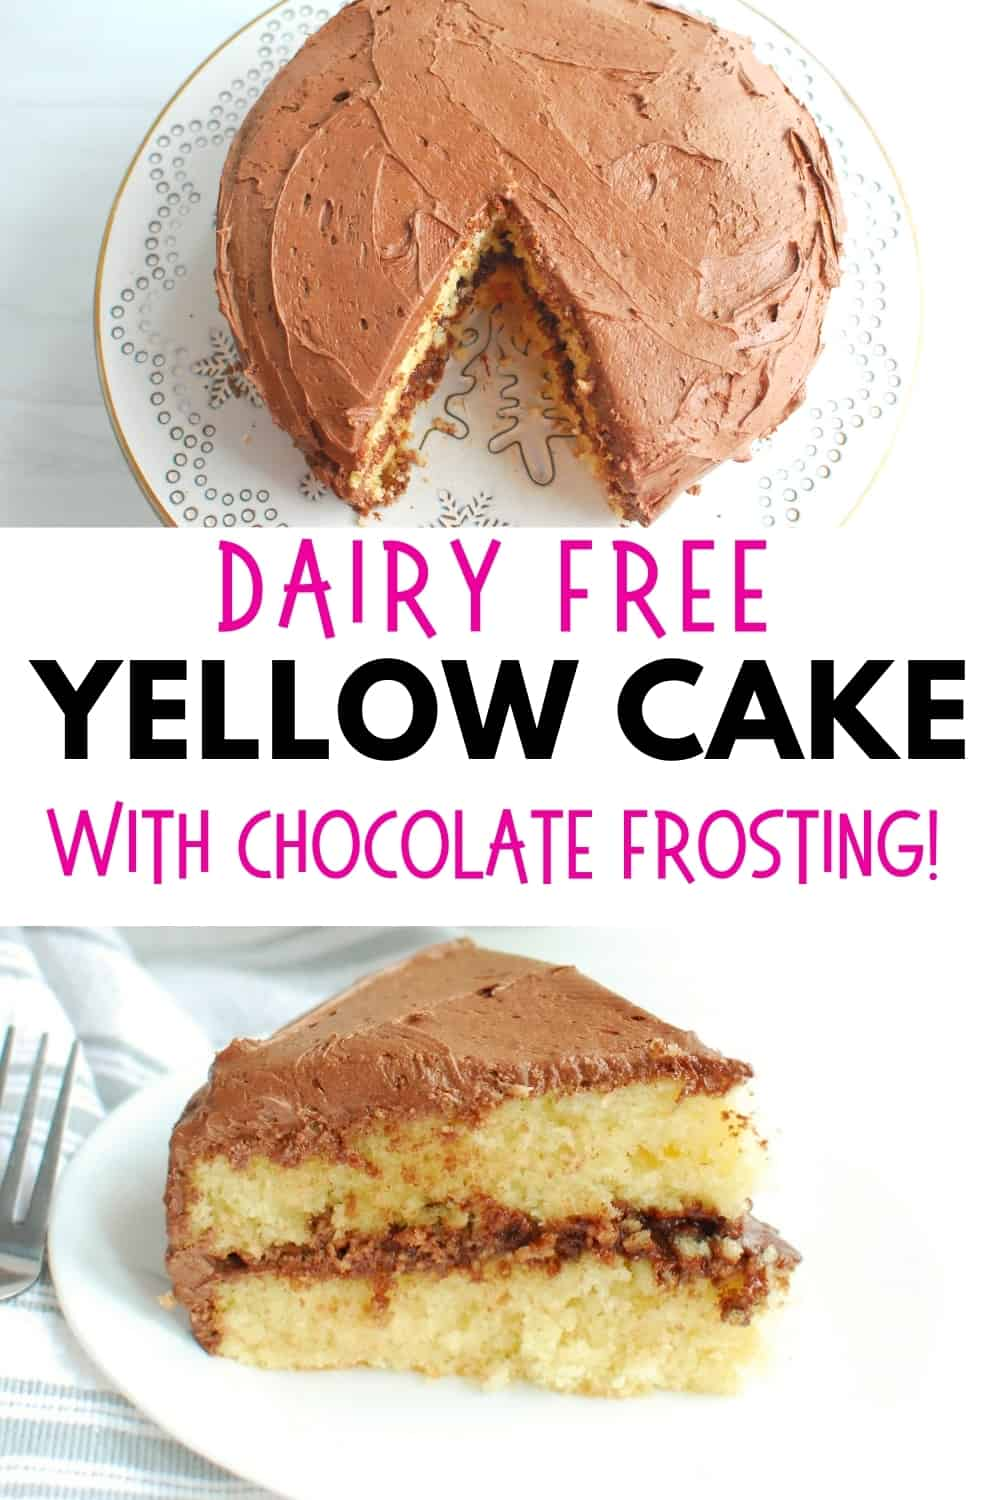 A collage of two images, one of an overhead shot of a frosted cake and another of a slice of a layered dairy free yellow cake with chocolate frosting.